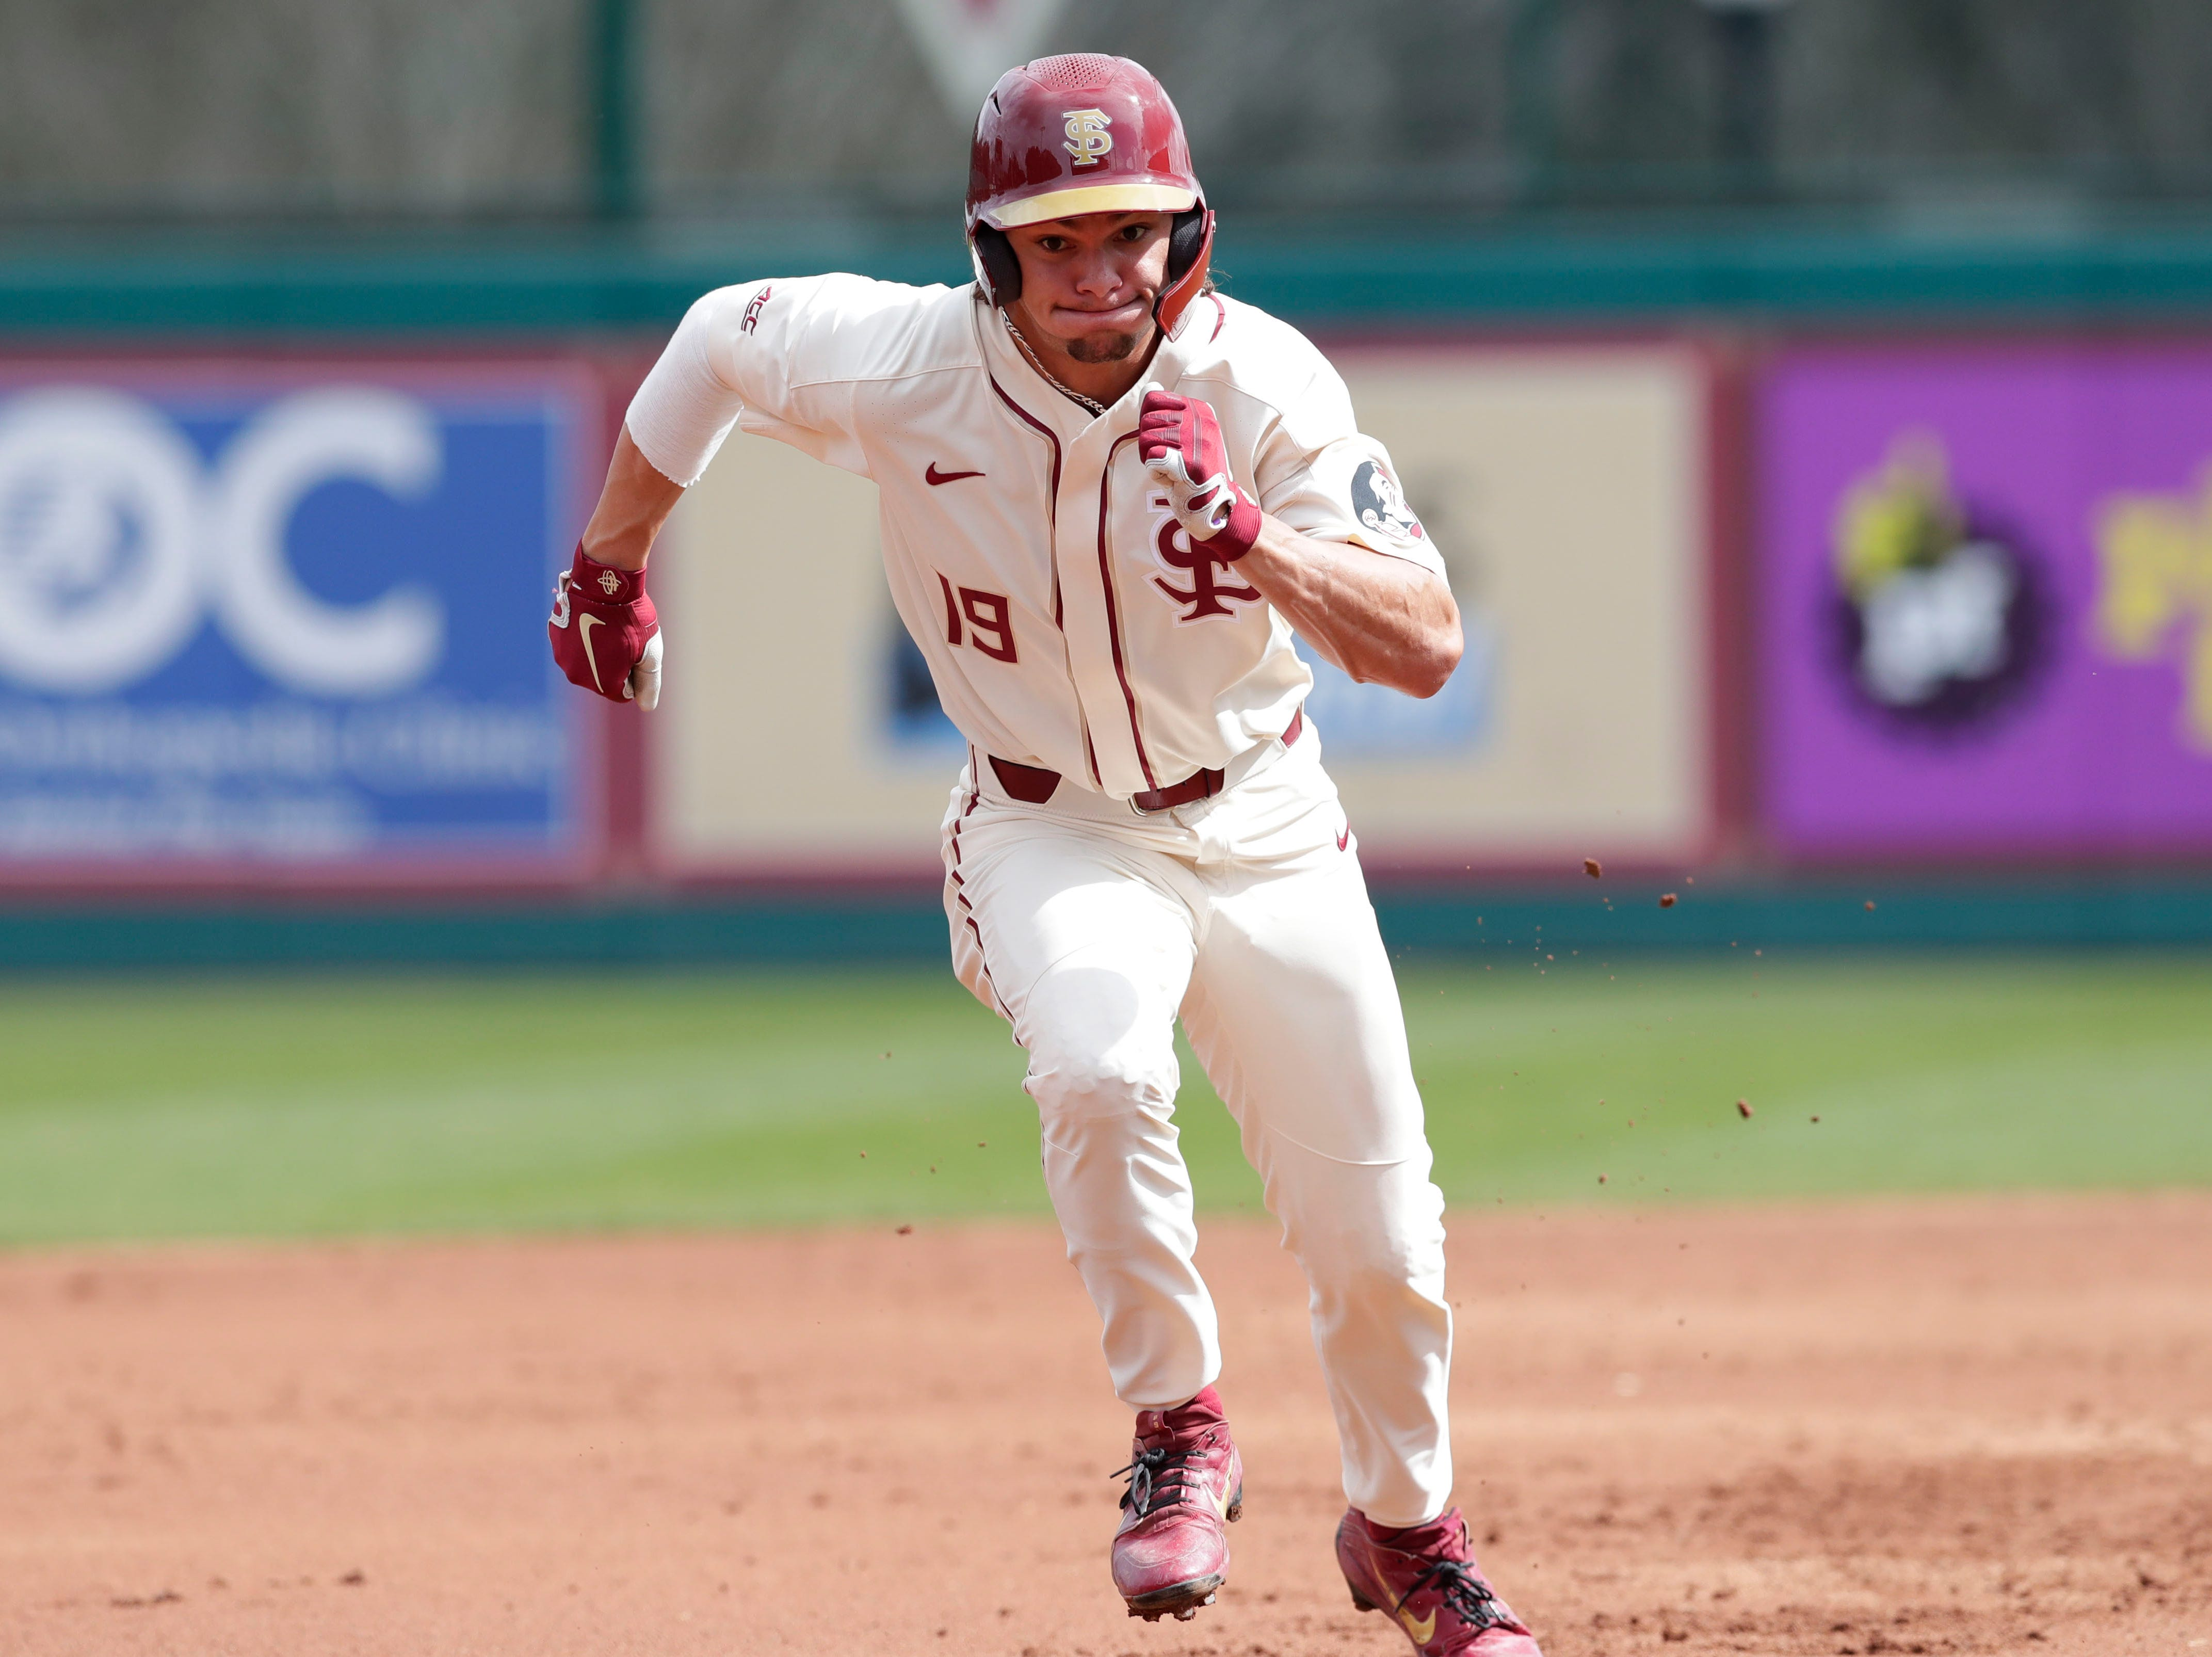 Florida State Seminoles outfielder Elijah Cabell (19) makes a sun for third base as the Florida State Seminoles host the Maine Black Bears for the second game of the series, Saturday Feb. 16, 2019.